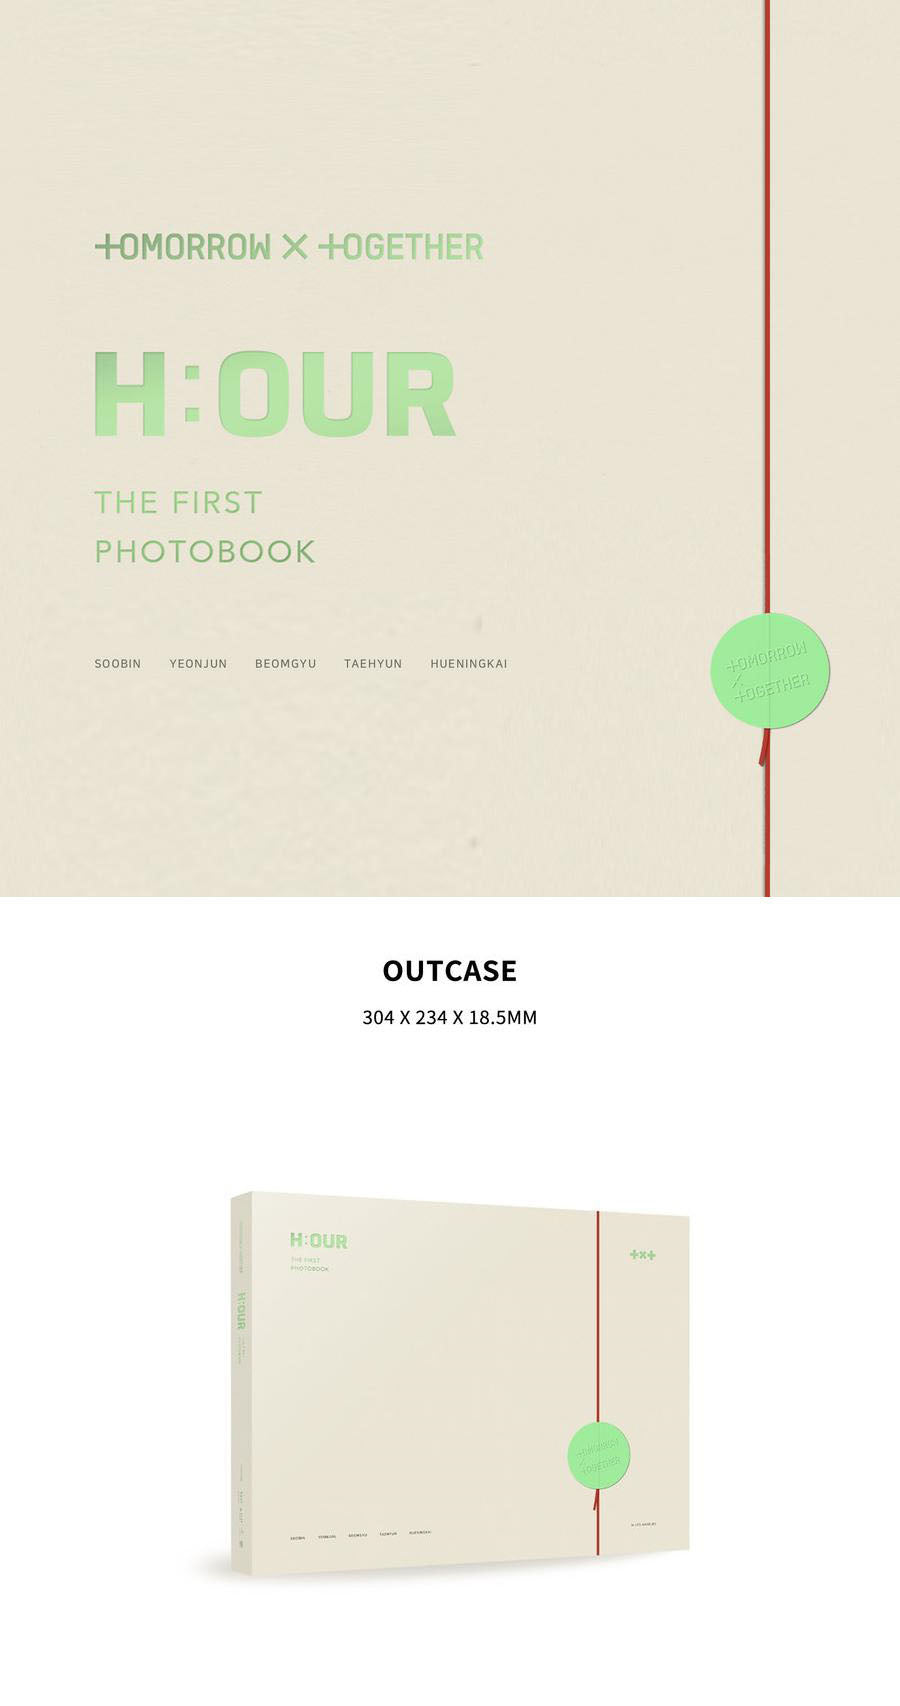 TXT: The First Photobook - H:OUR - J-Store Online